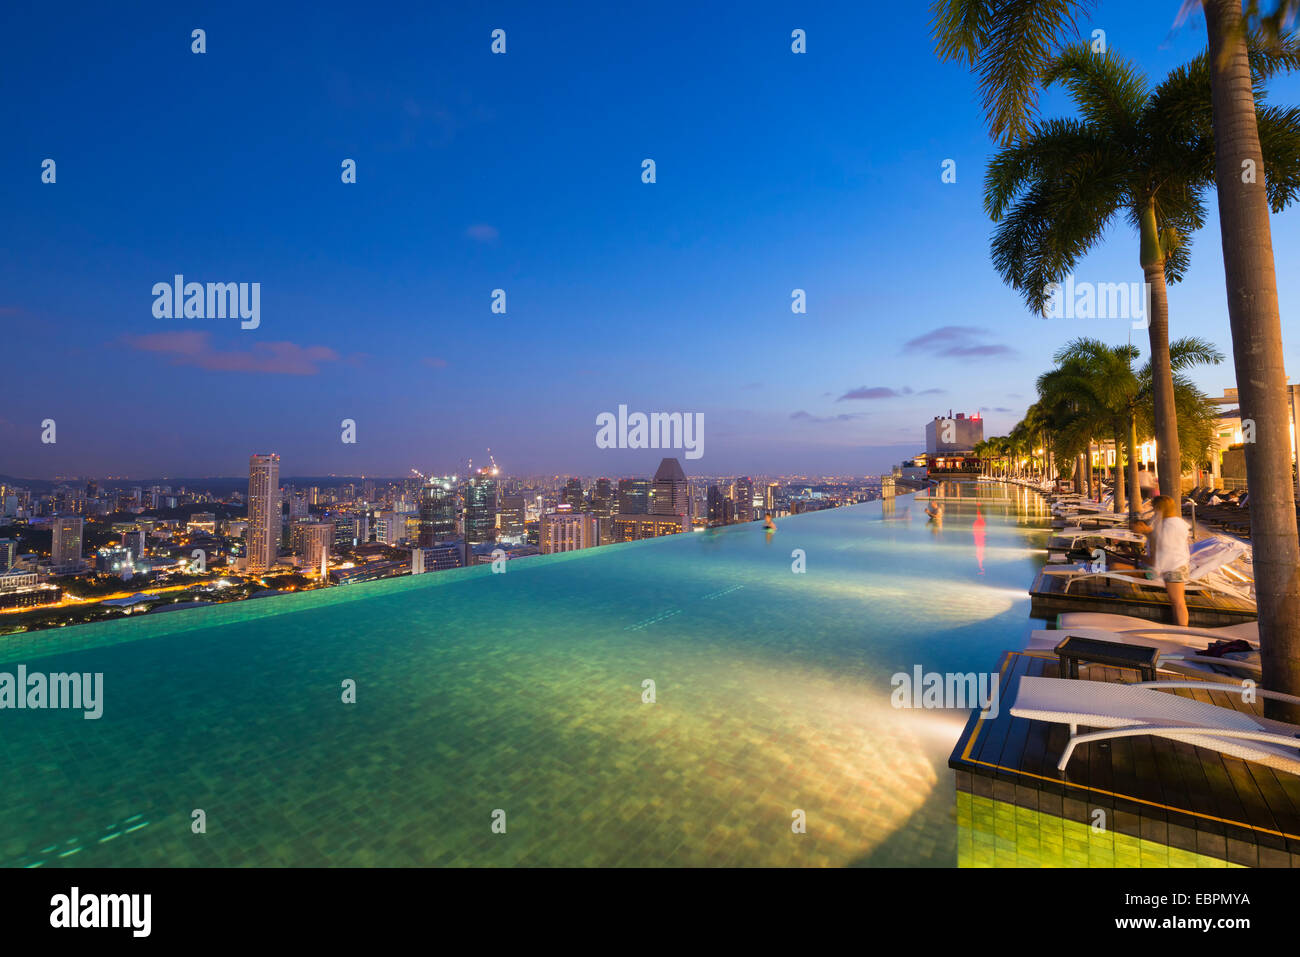 Infinity pool of the Marina Bay Sands, Singapore, Southeast Asia, Asia - Stock Image